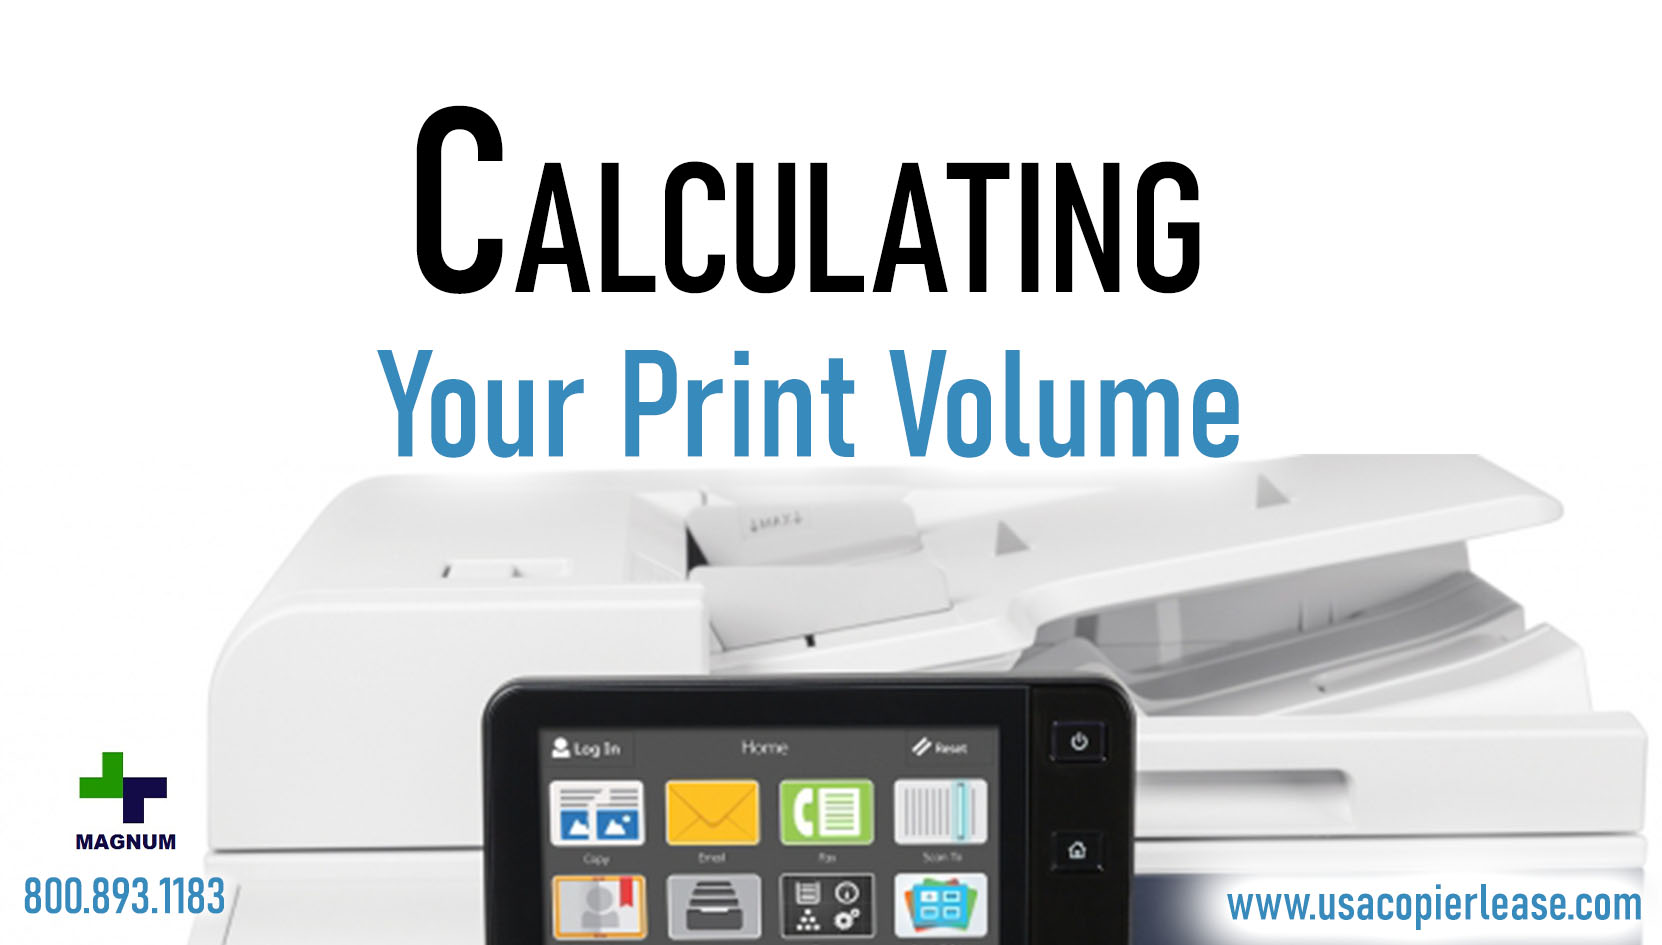 How Much Do You Print Monthly?